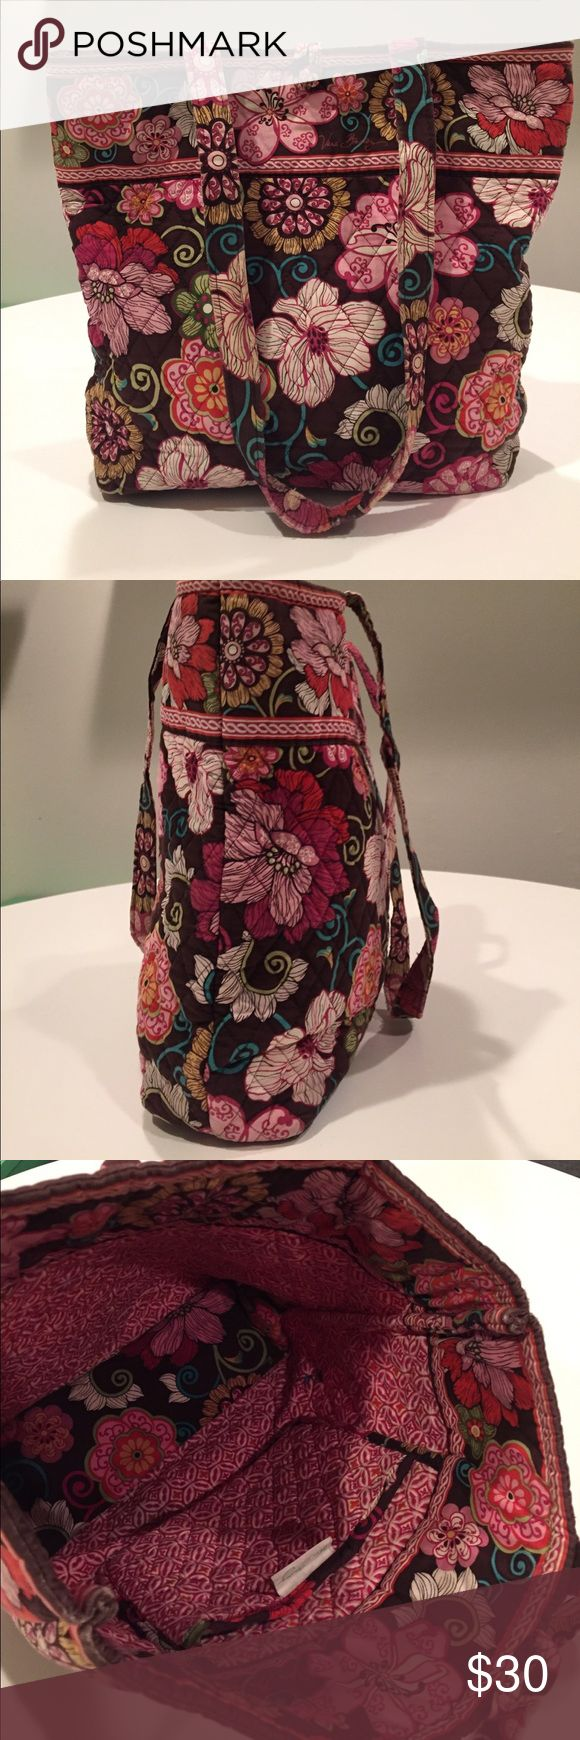 "Vera Bradley Tote Bag Authentic Vera Bradley Tote Bag. ""Mod Floral"" pattern. Perfect tote for school books! Includes one inside pocket. Dimensions are 12"" w x 13 ½"" h x 4"" d and 11 ½"" strap drop. Vera Bradley Bags Totes"